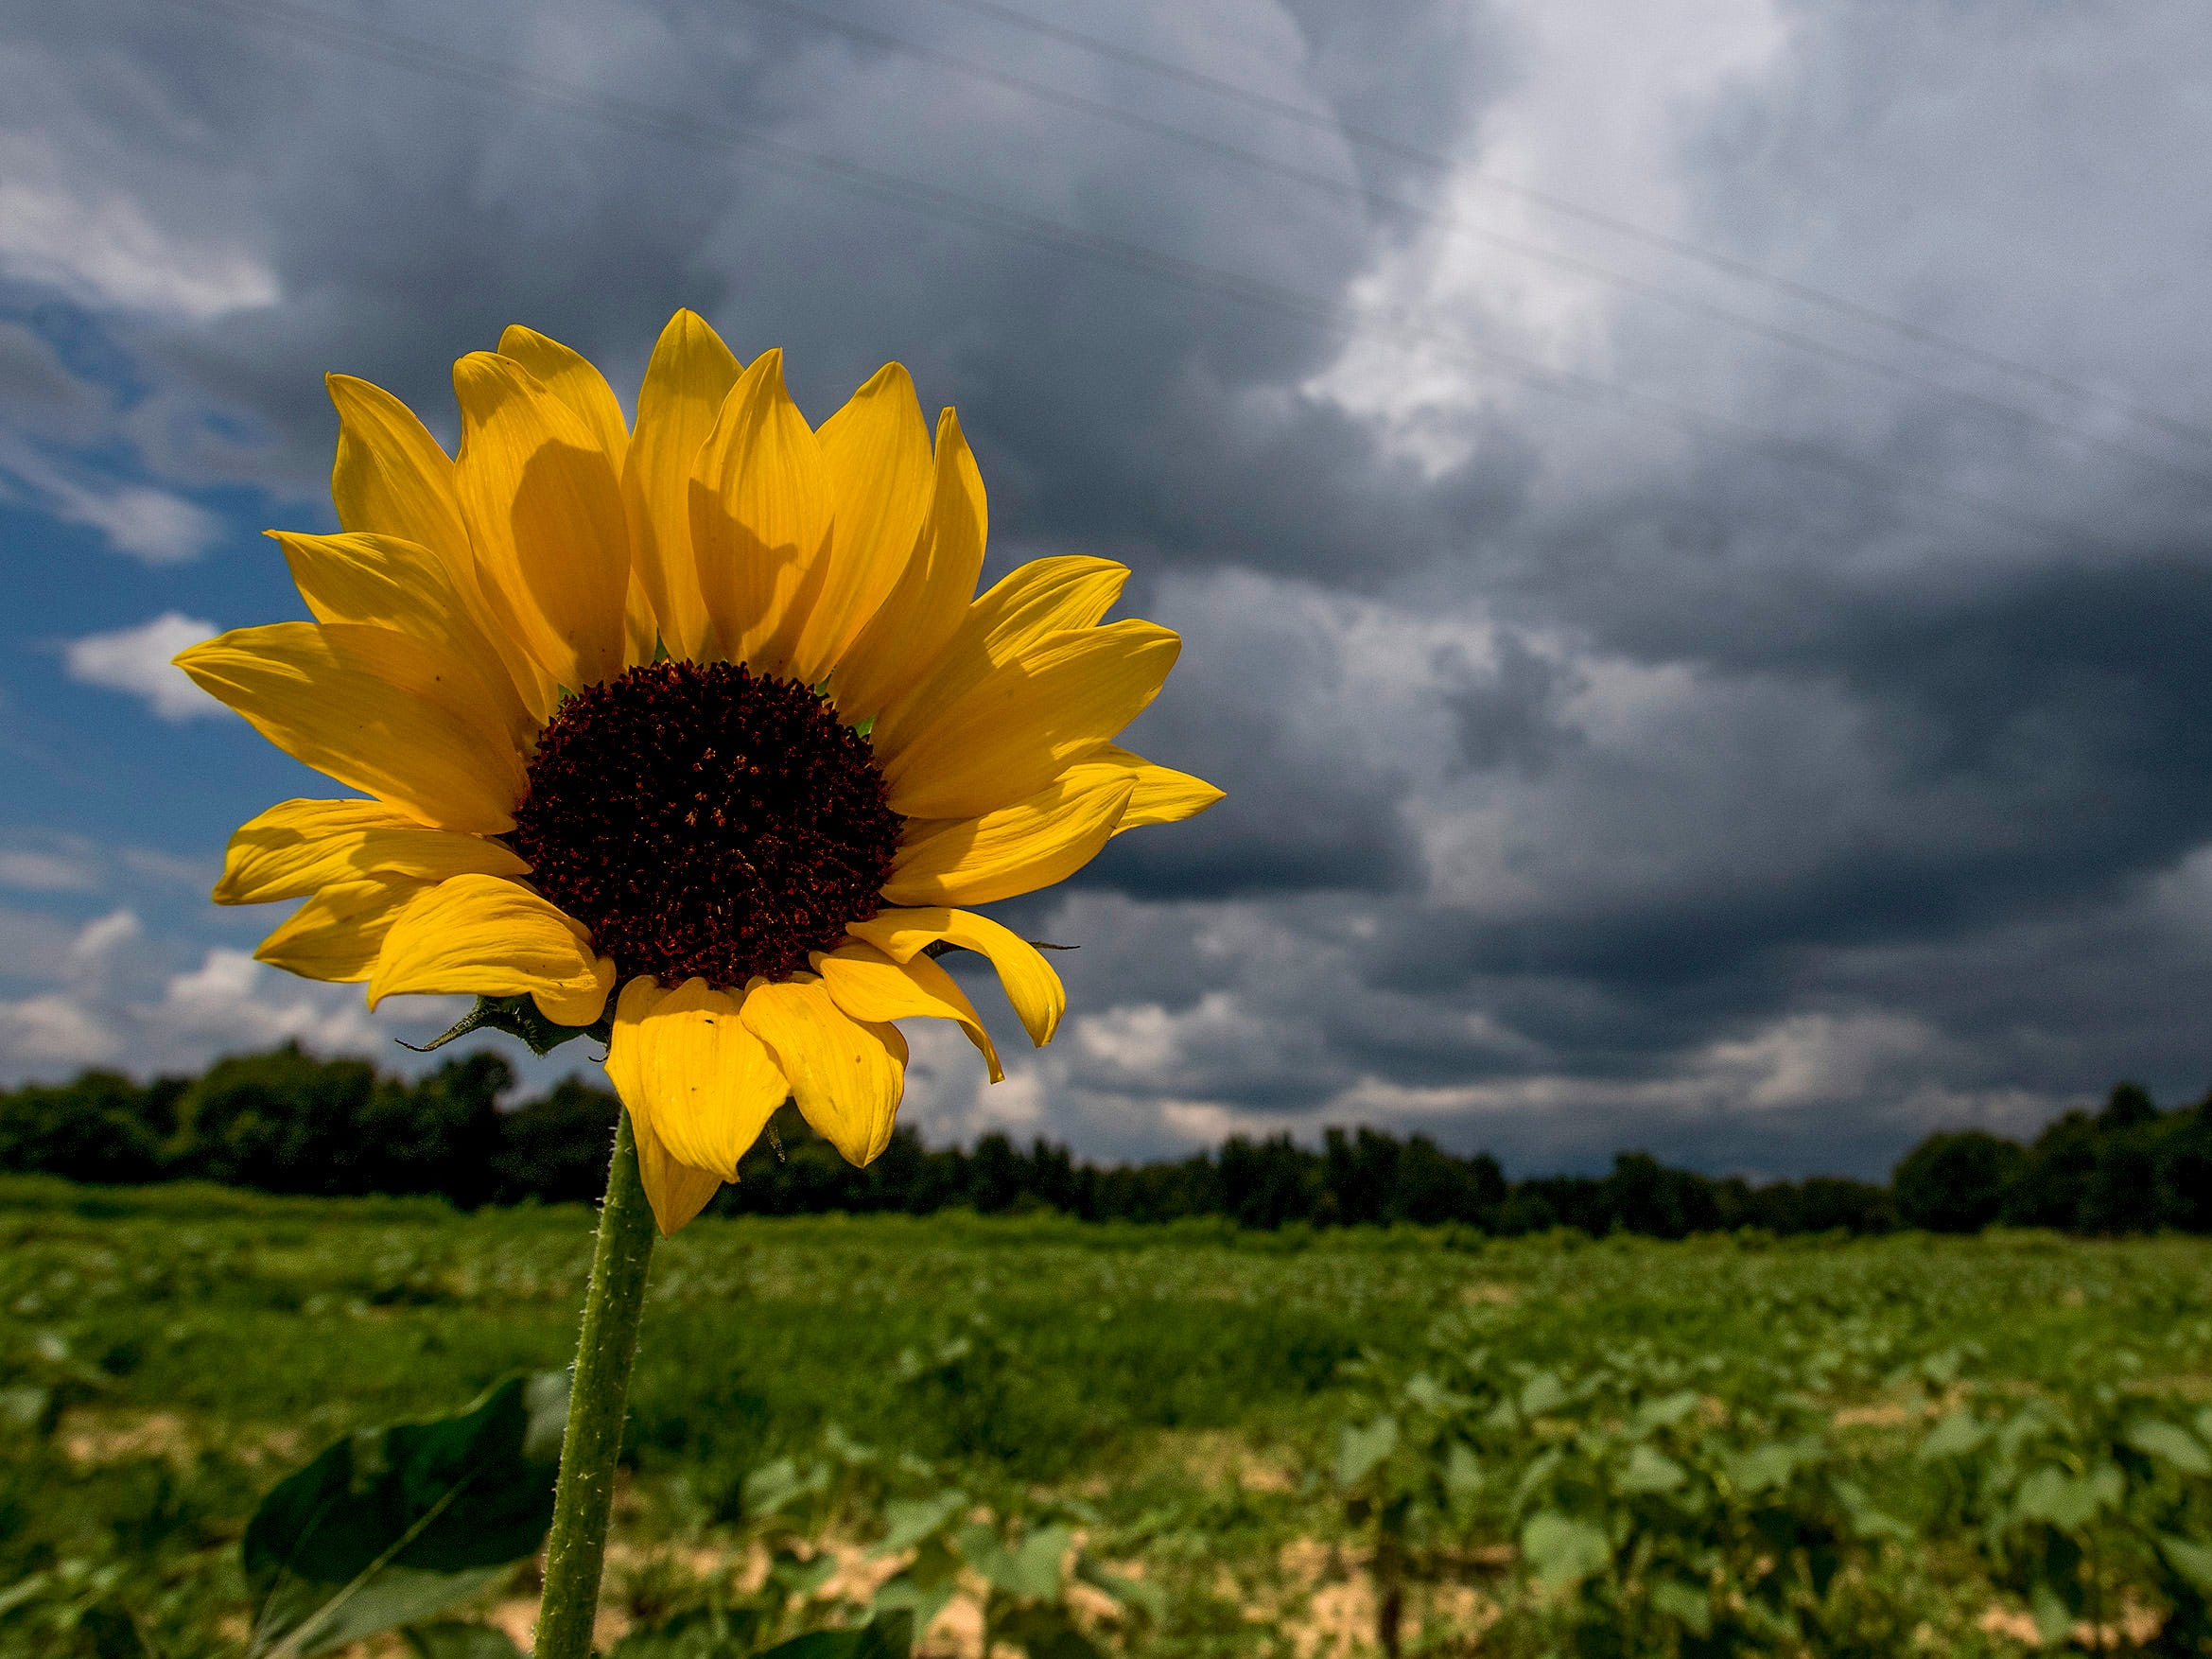 One of the few sunflowers that is blooming in Todd Sheridan's sunflower field near Autaugaville, Ala., on Tuesday, July 24, 2018. Sheridan had to replant the popular field, so it is not expected to bloom until August.